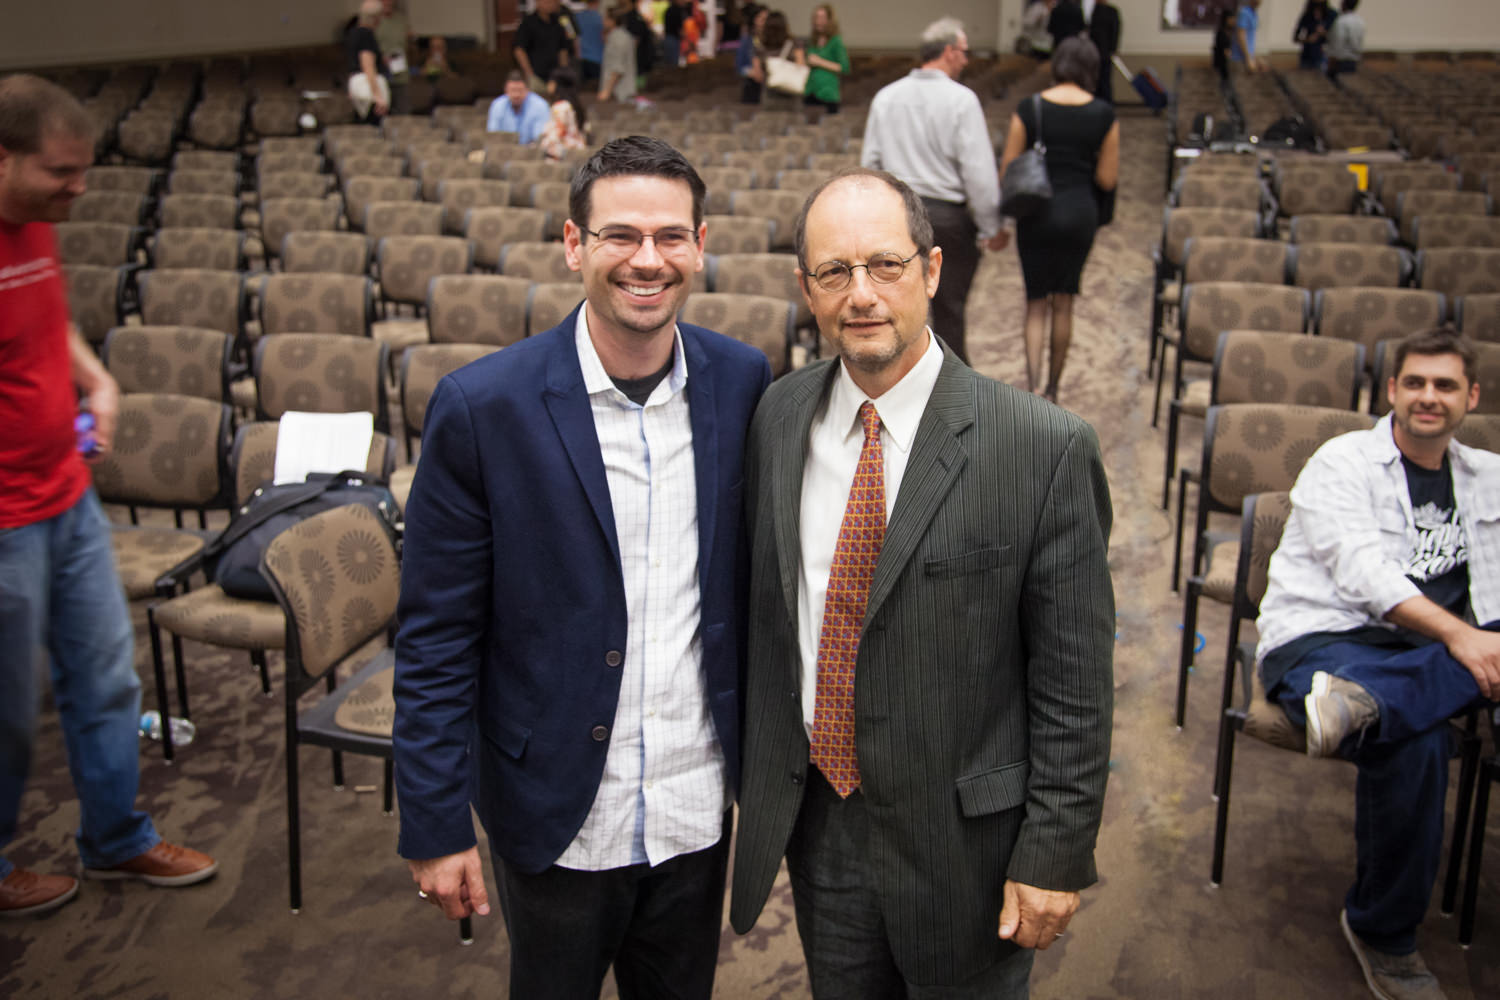 Justin Bass and Bart Ehrman Smiling Together